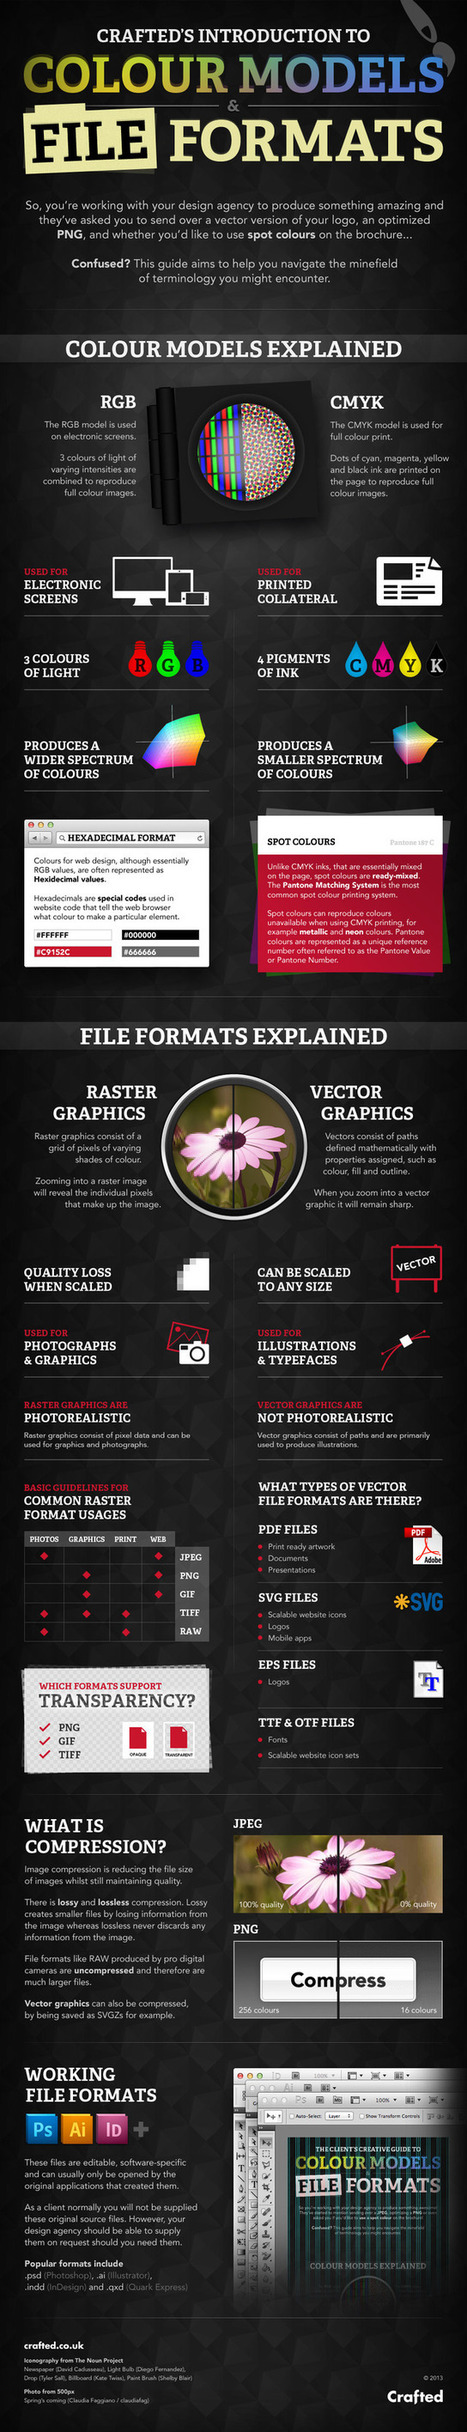 Graphic design explained for the non-designer - The InfoHound   Technology - Badges - Infographics - EdTech   Scoop.it